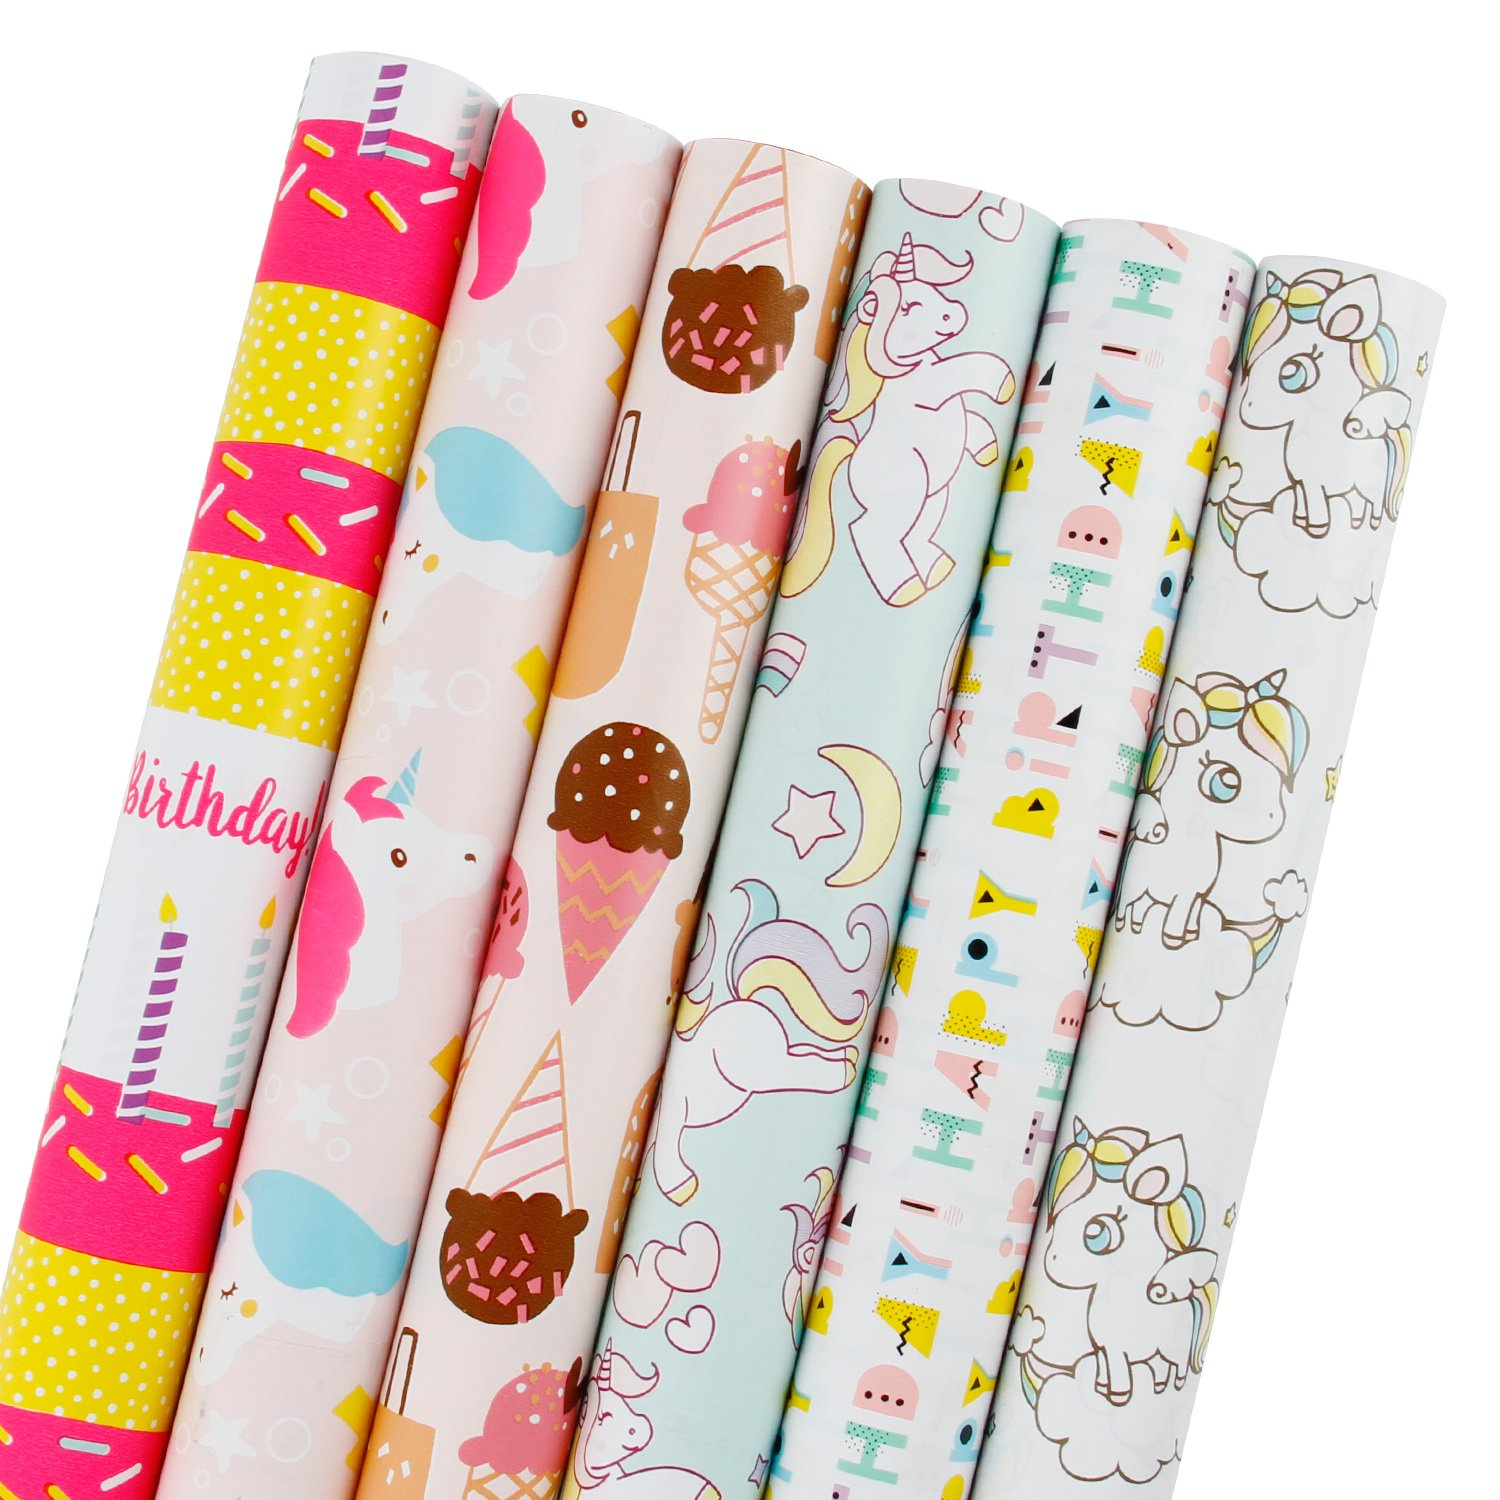 LaRibbons Birthday Gift Wrapping Paper - Unicorn, Ice Cream, Candles Cute Design for Holiday, Party, Baby Shower Gift Wrap - 6 Rolls - 30 inch X 120 inch per Roll